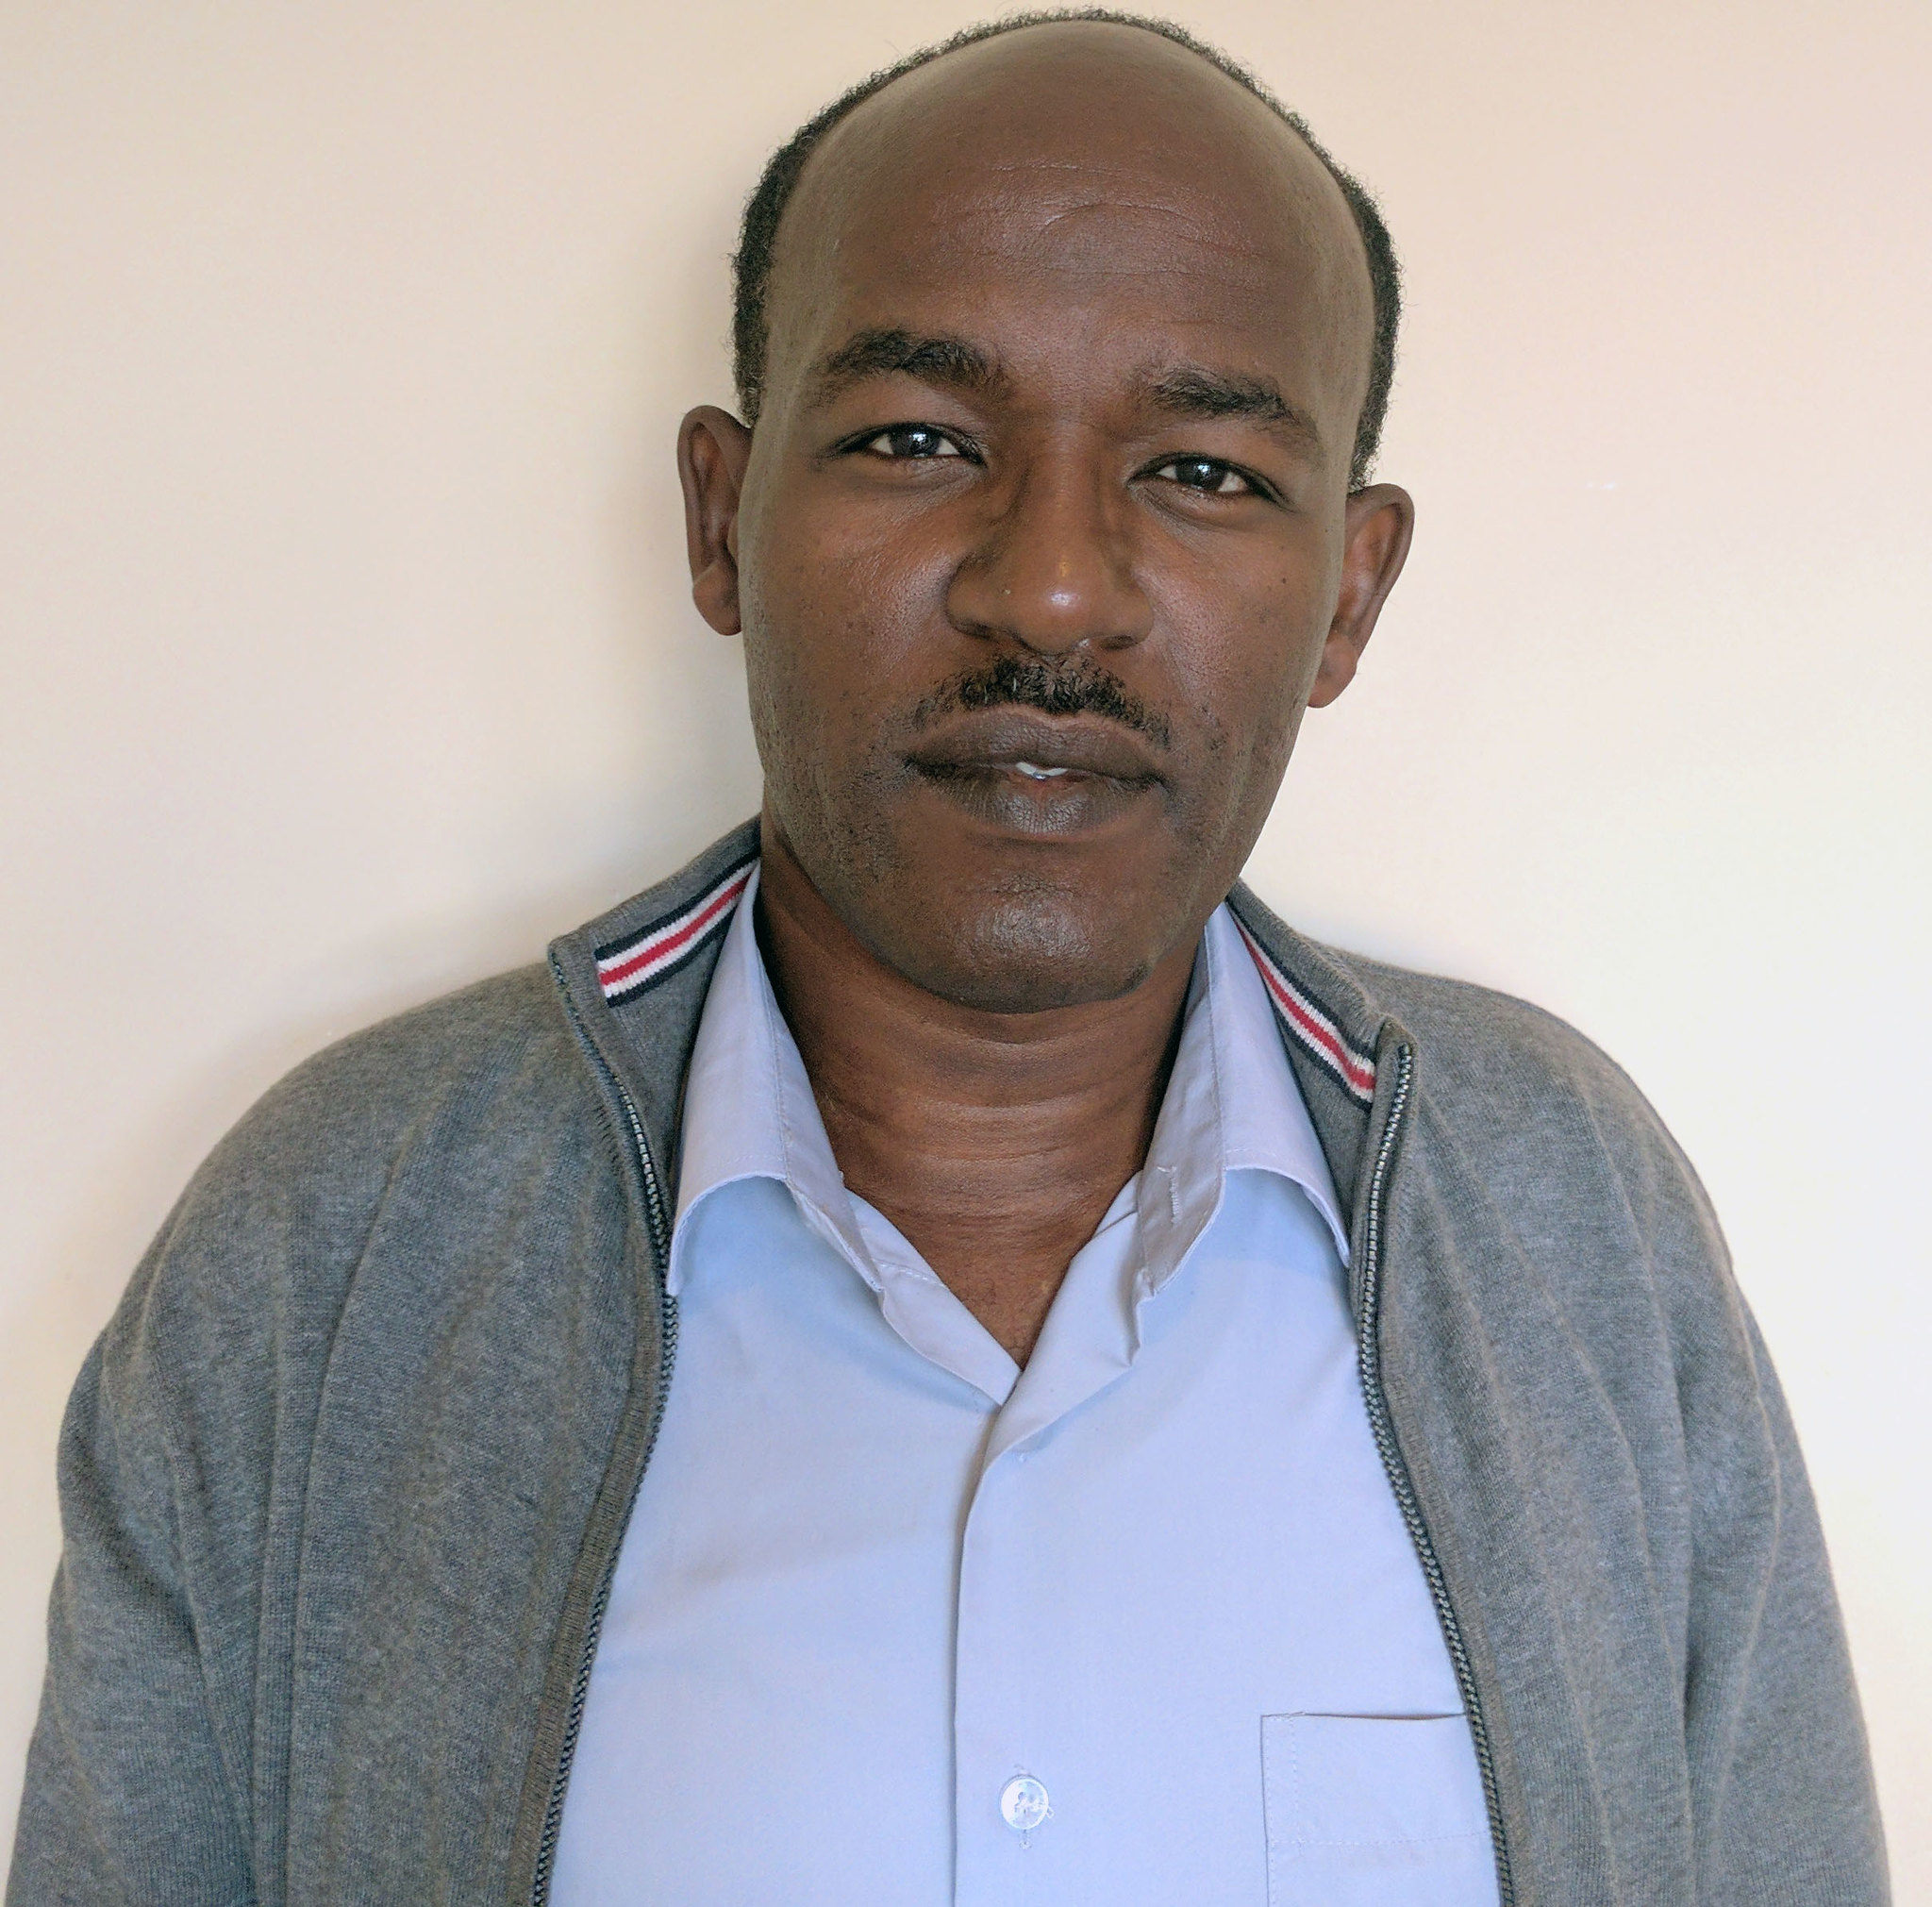 Tekleyohannis Birihanu (Phd) is African Chicken Genetic Gains' (ACGG) Sub National Coordinator in the Southern Nations and Nationalities Region in Ethiopia. (photo credit: ILRI / M. Tsegaye)